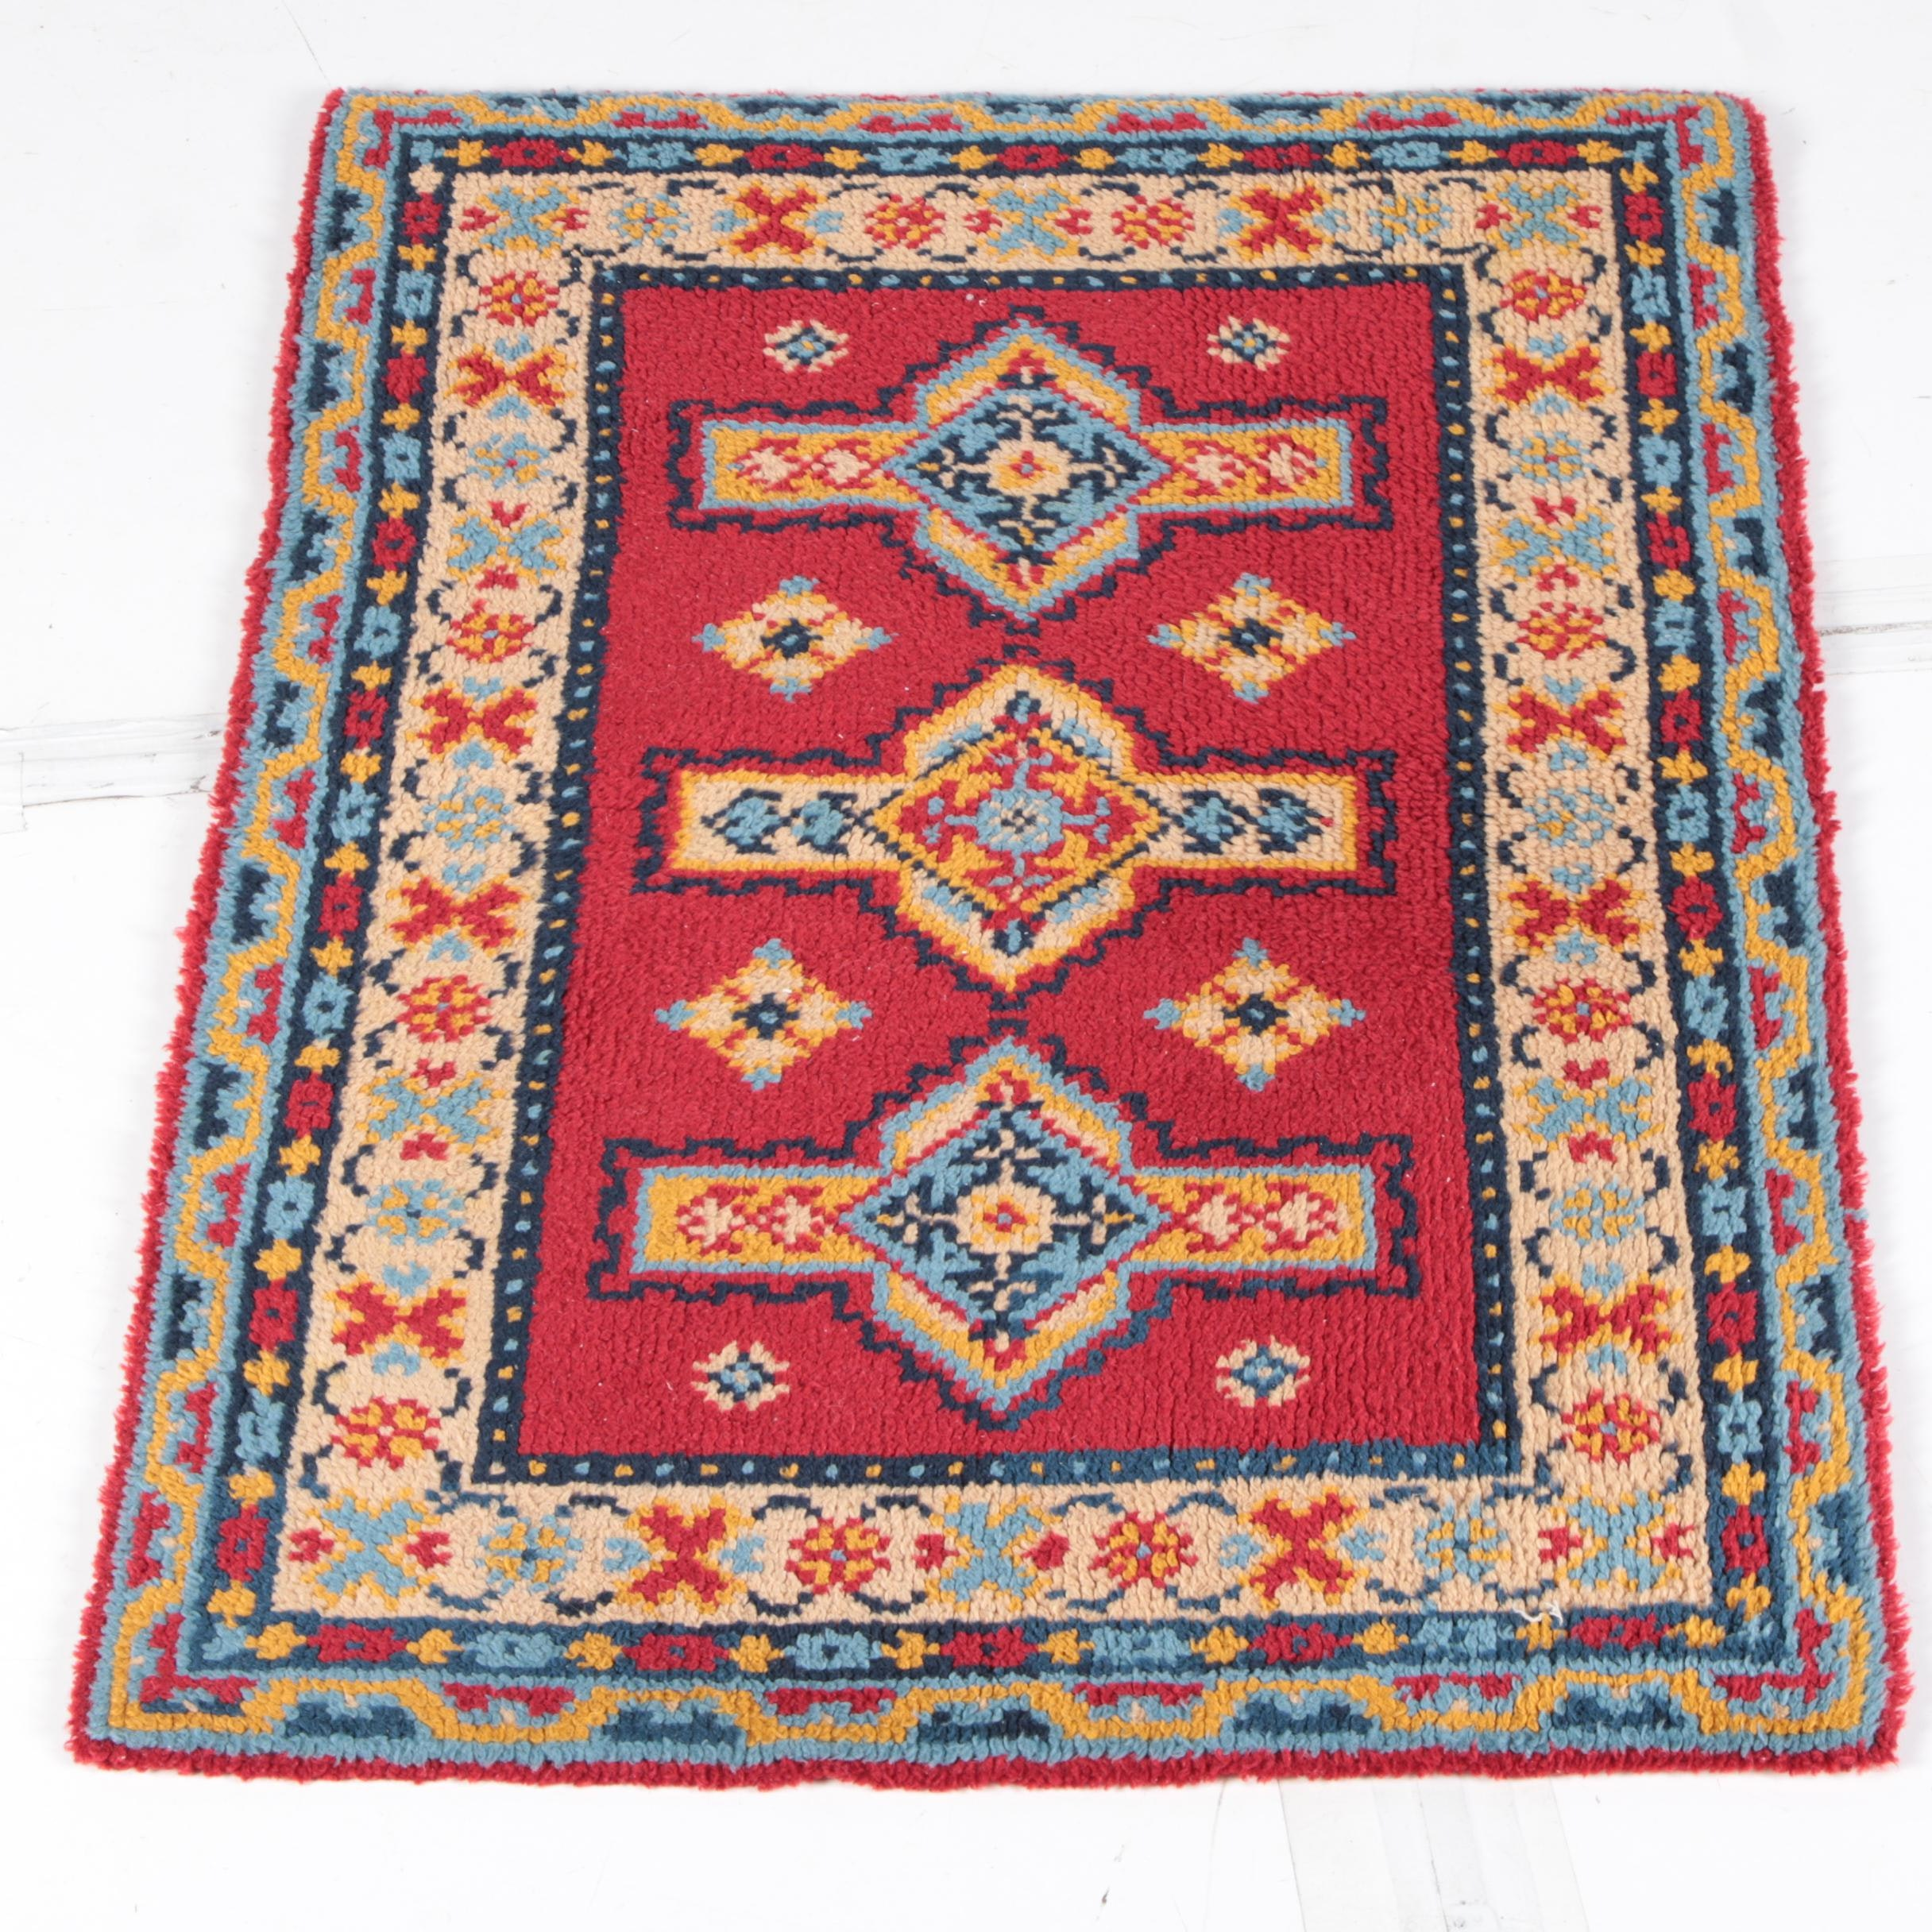 Hand-Knotted Caucasian-Syle Small Area Rug